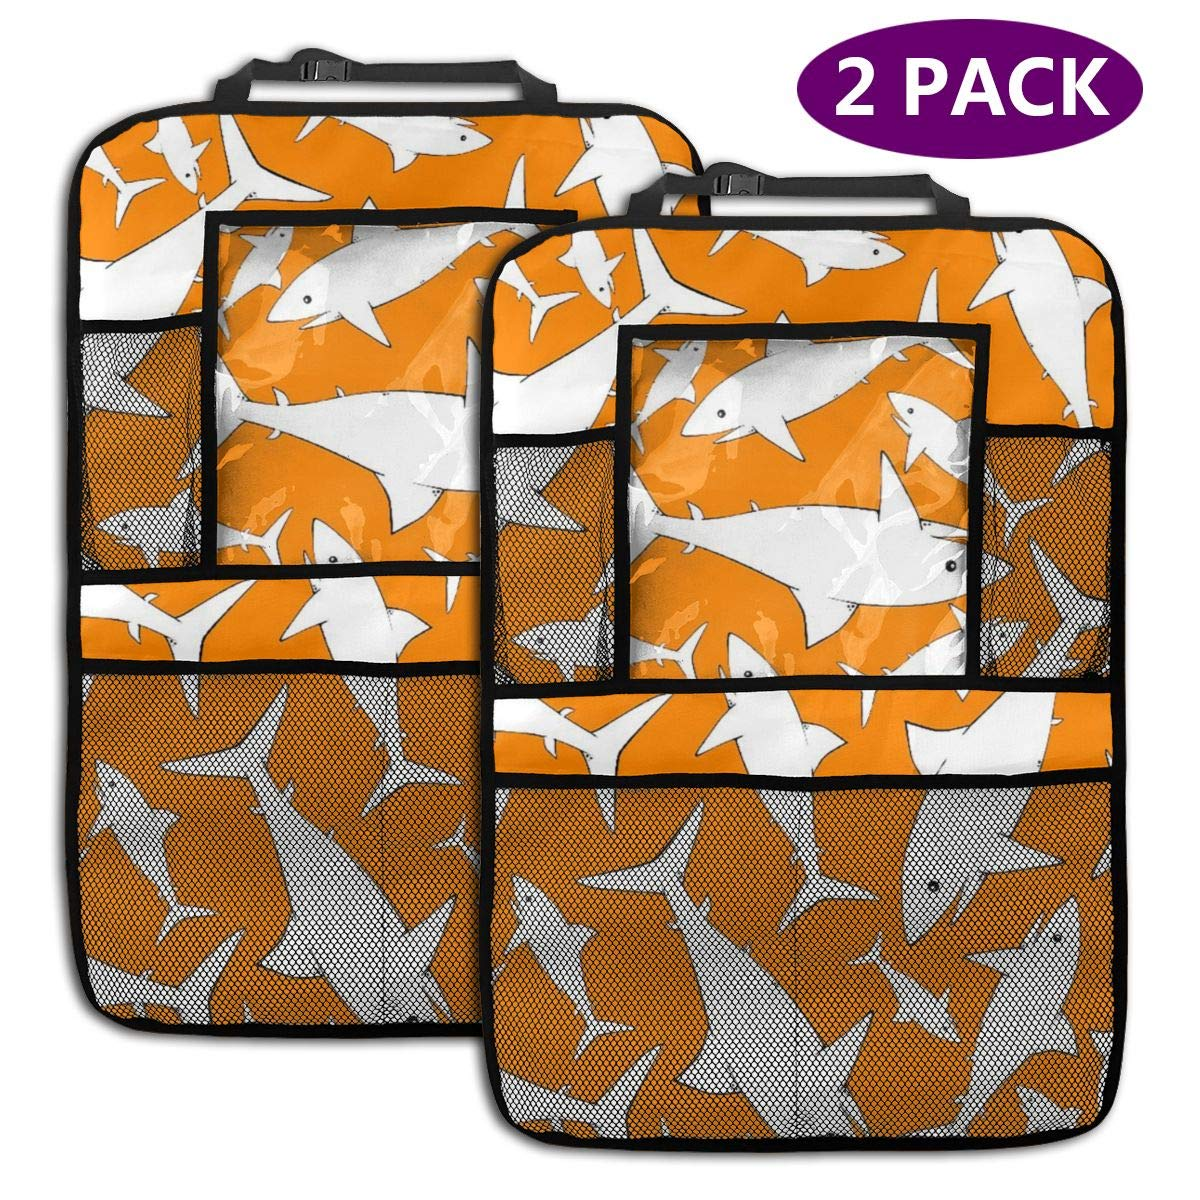 QF6FEICHAN Shark in Orange Car Seat Back Protectors with Storage Pockets Kick Mats Accessories for Kids and Toddlers by QF6FEICHAN